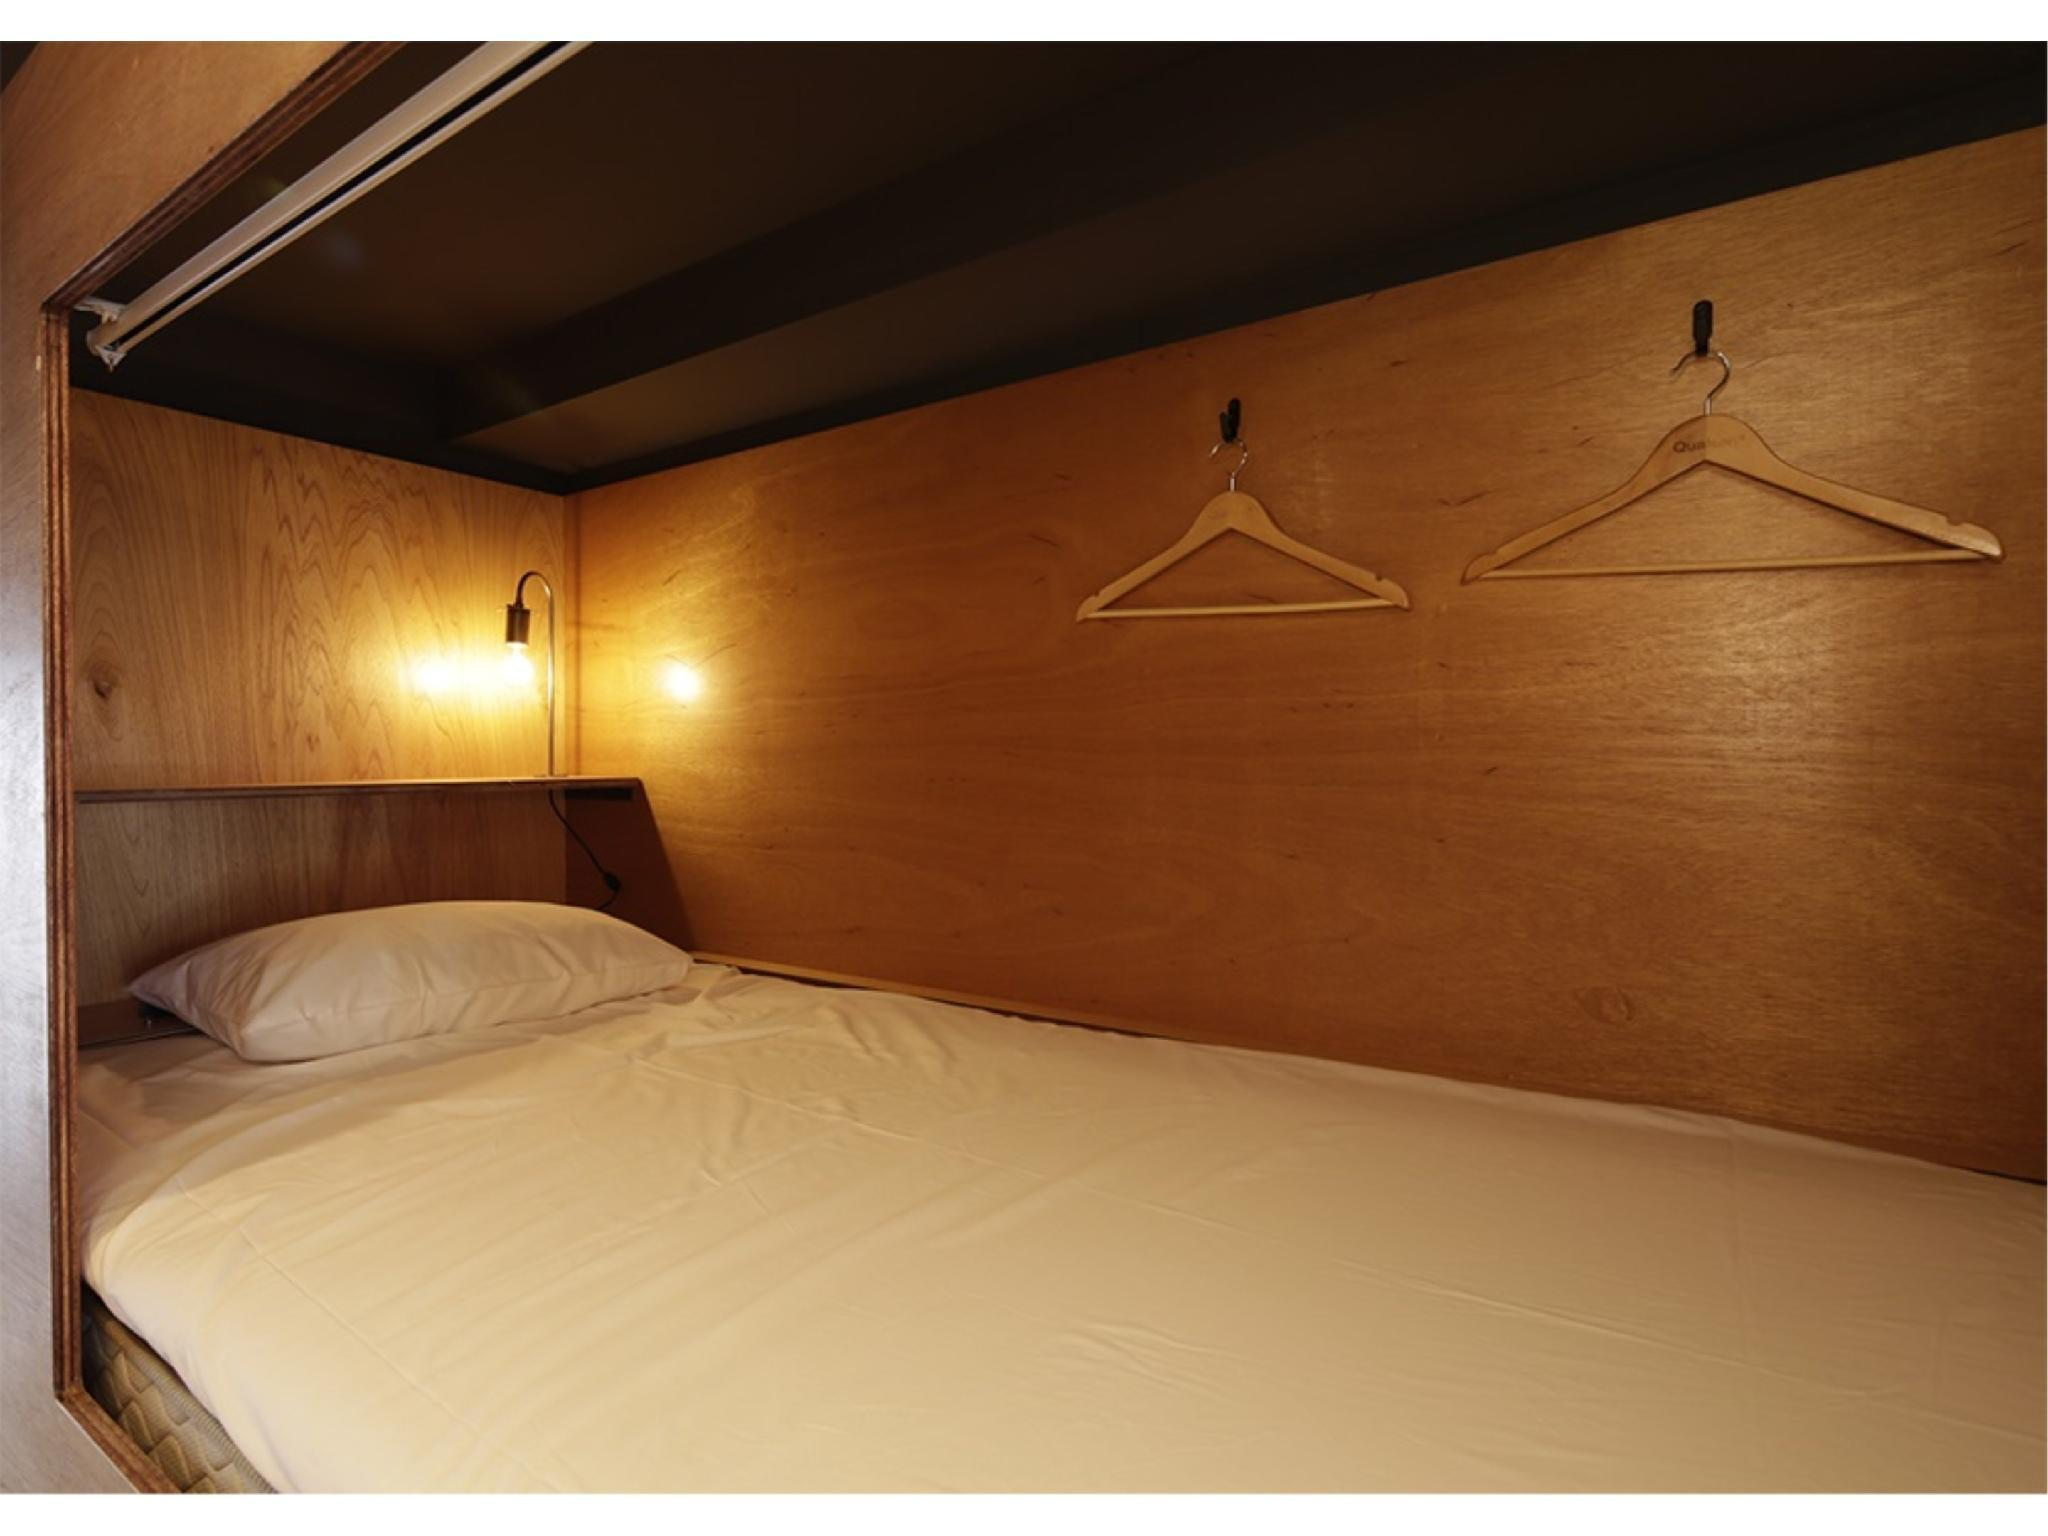 合住房(雙層床)※無廁所浴室 (Mixed Dormitory Room (Bunk Beds) *No bath in room)